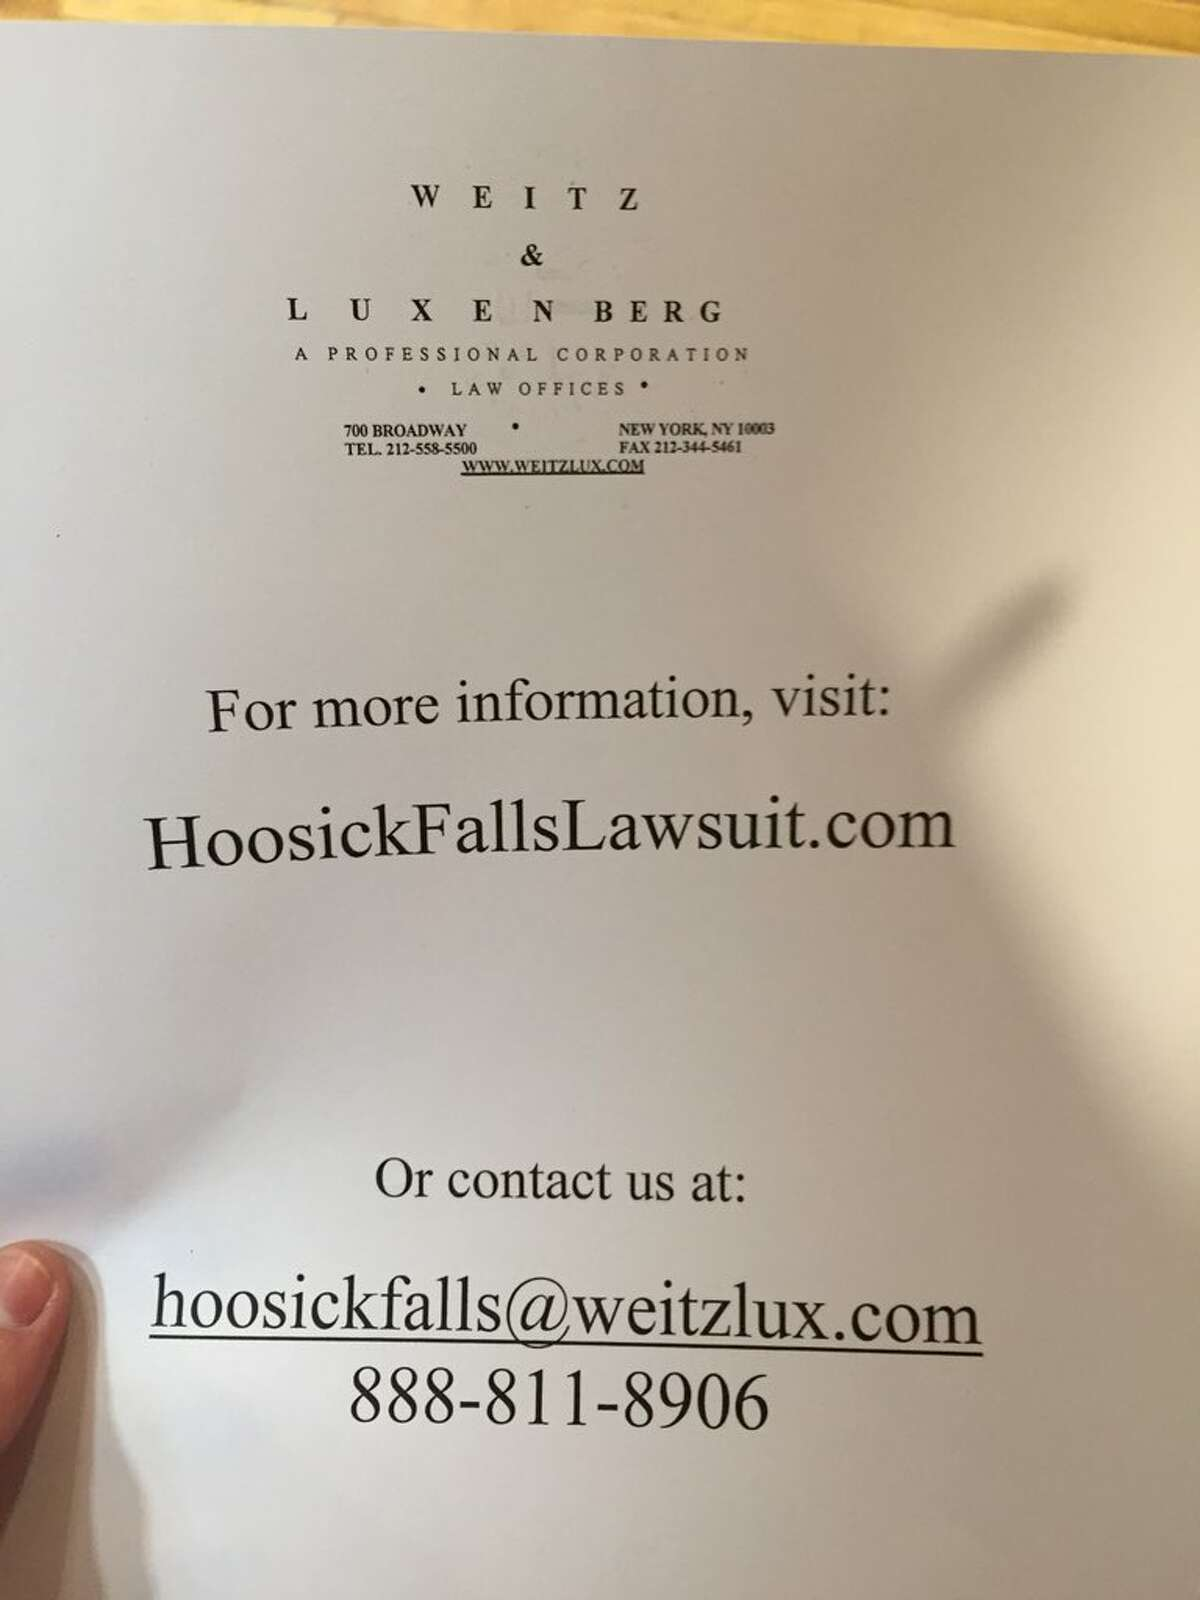 A flyer that was distributed on Saturday, Jan. 30, 2016, by the law firm Weitz & Luxenberg to those attending a community meeting at Bennington College to address water contamination in nearby Hoosick Falls. The law firm brought Erin Brockovich to meet with residents. (Matthew Hamilton/Times Union)